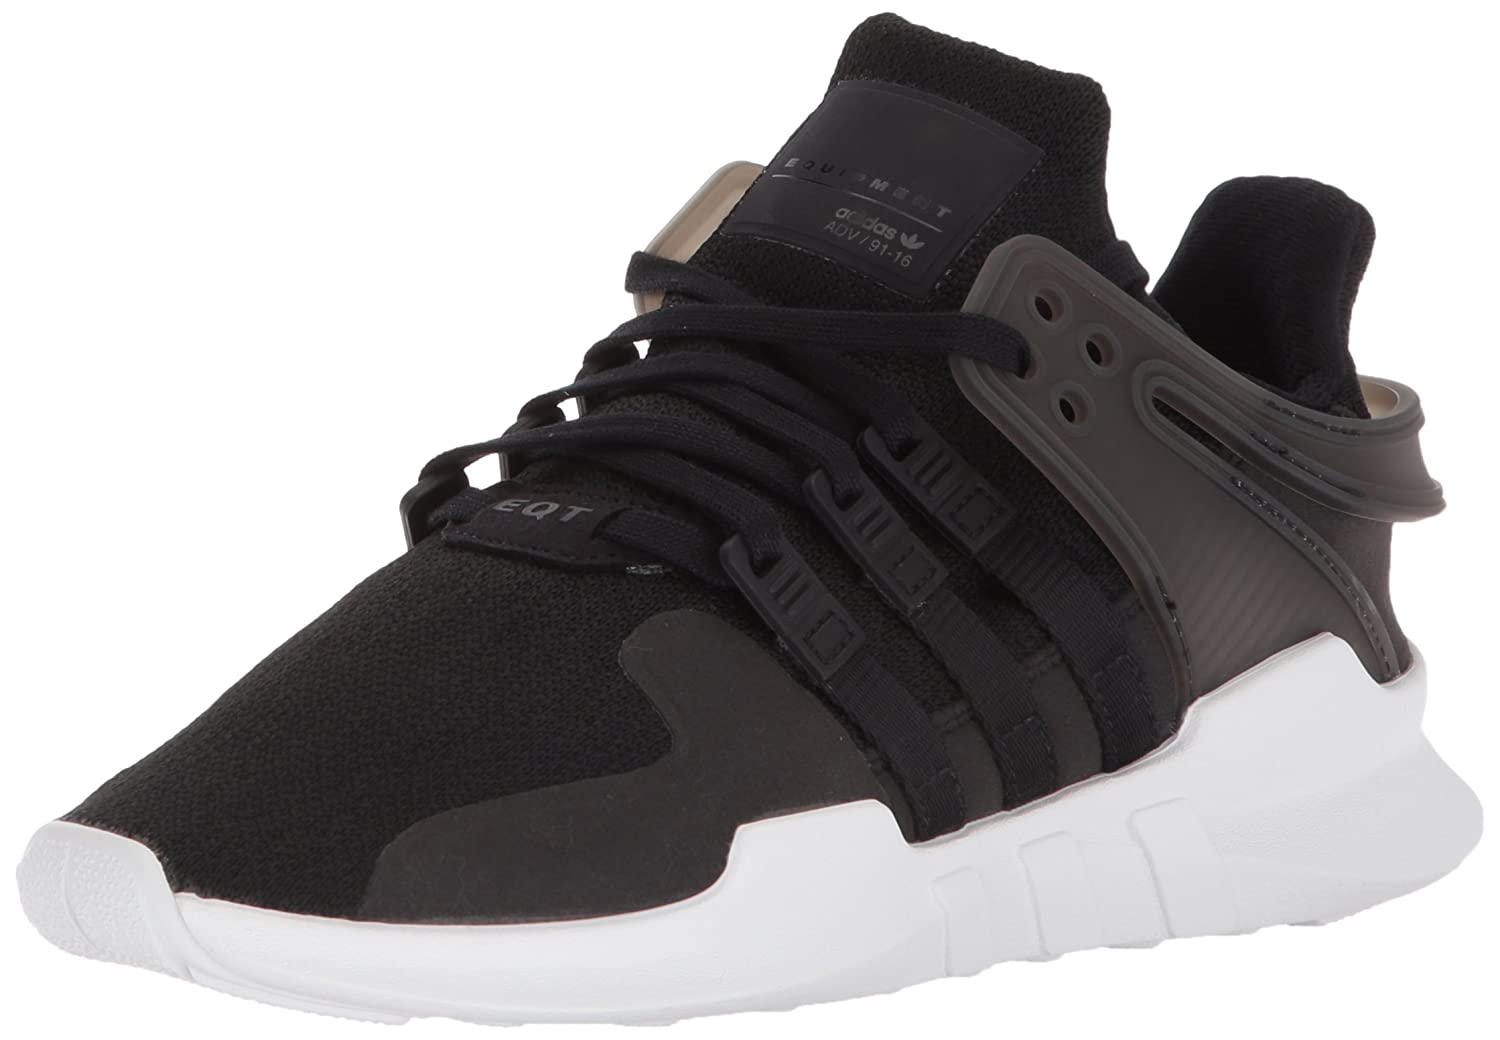 buy popular 70760 3a6fc Amazon.com  adidas Originals Boys EQT Support ADV J Running Shoe Black White, 4 M US Big Kid  Shoes